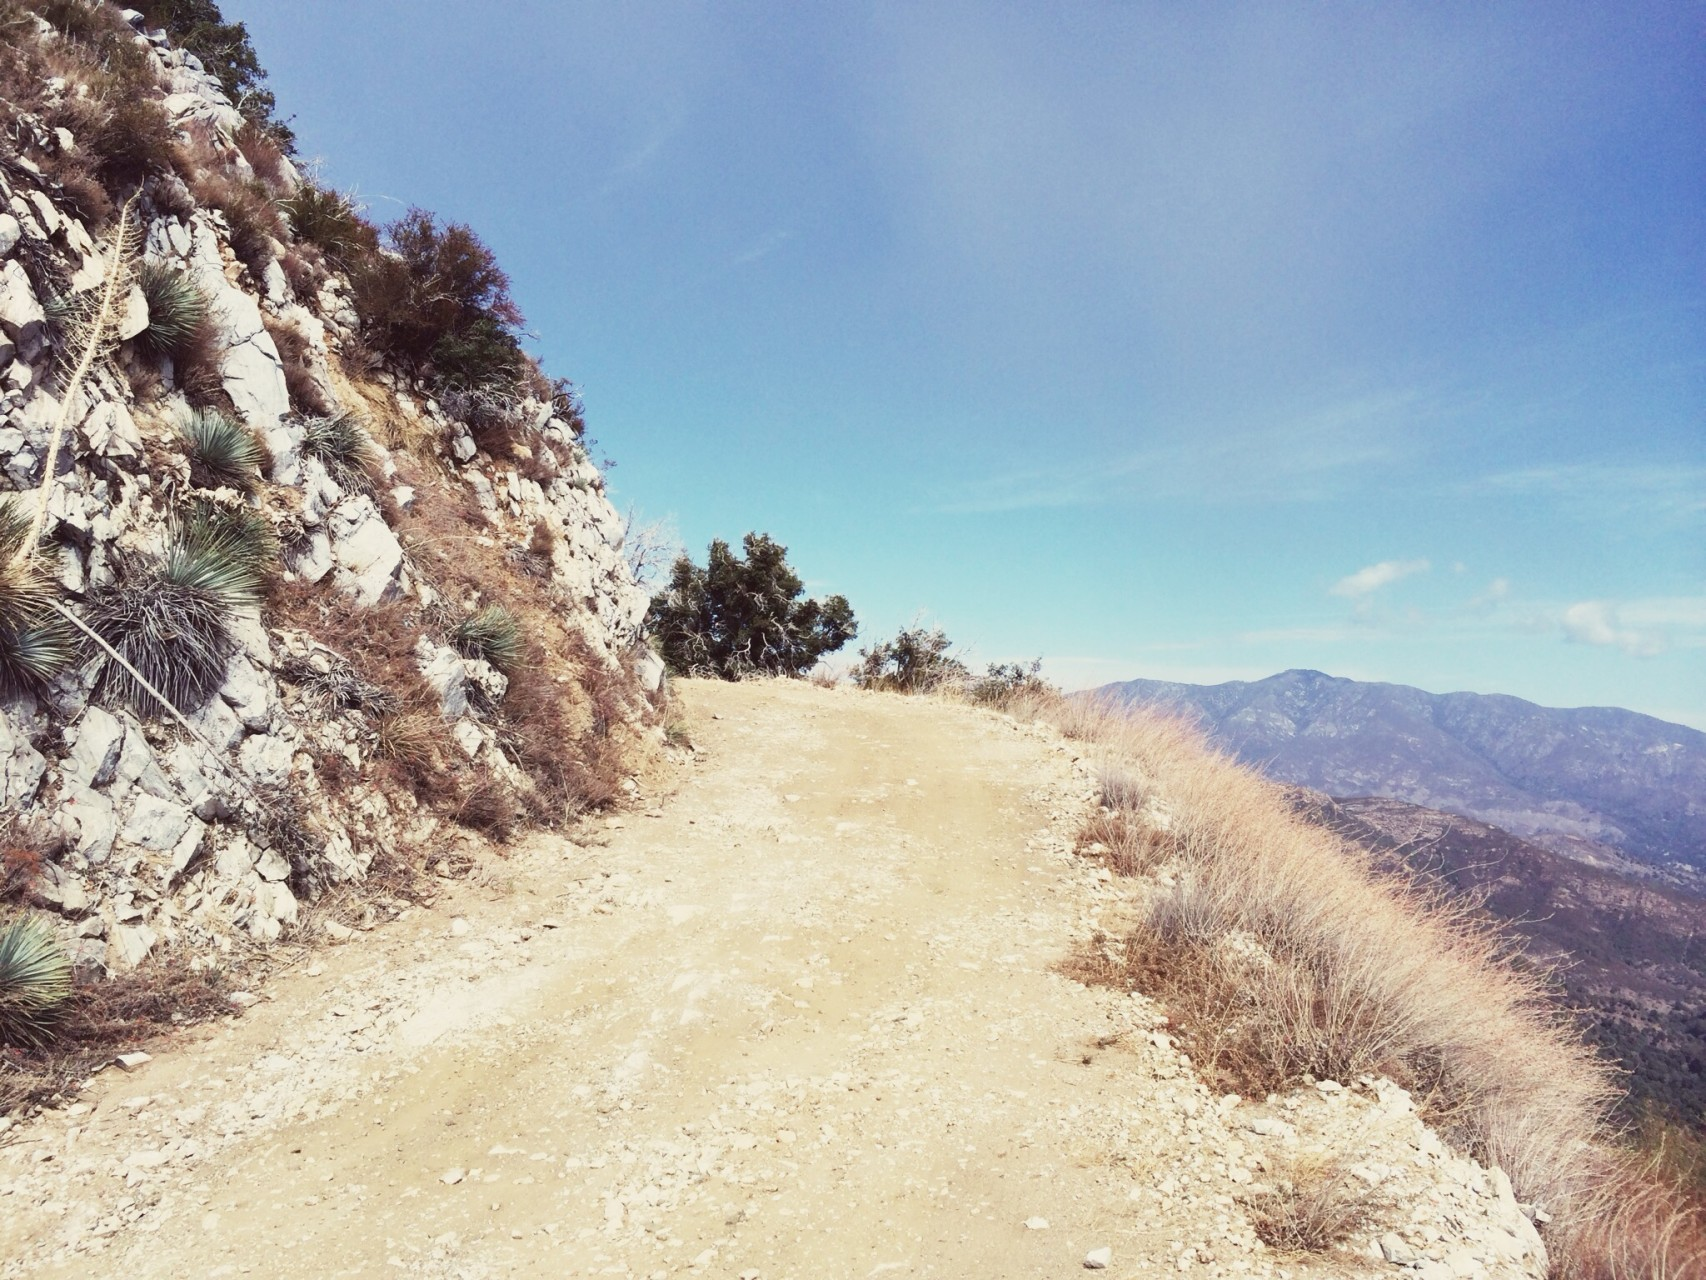 North Ridge Trail. Excellent surface in some area, broken and gravelly in others. But altogether awesome.